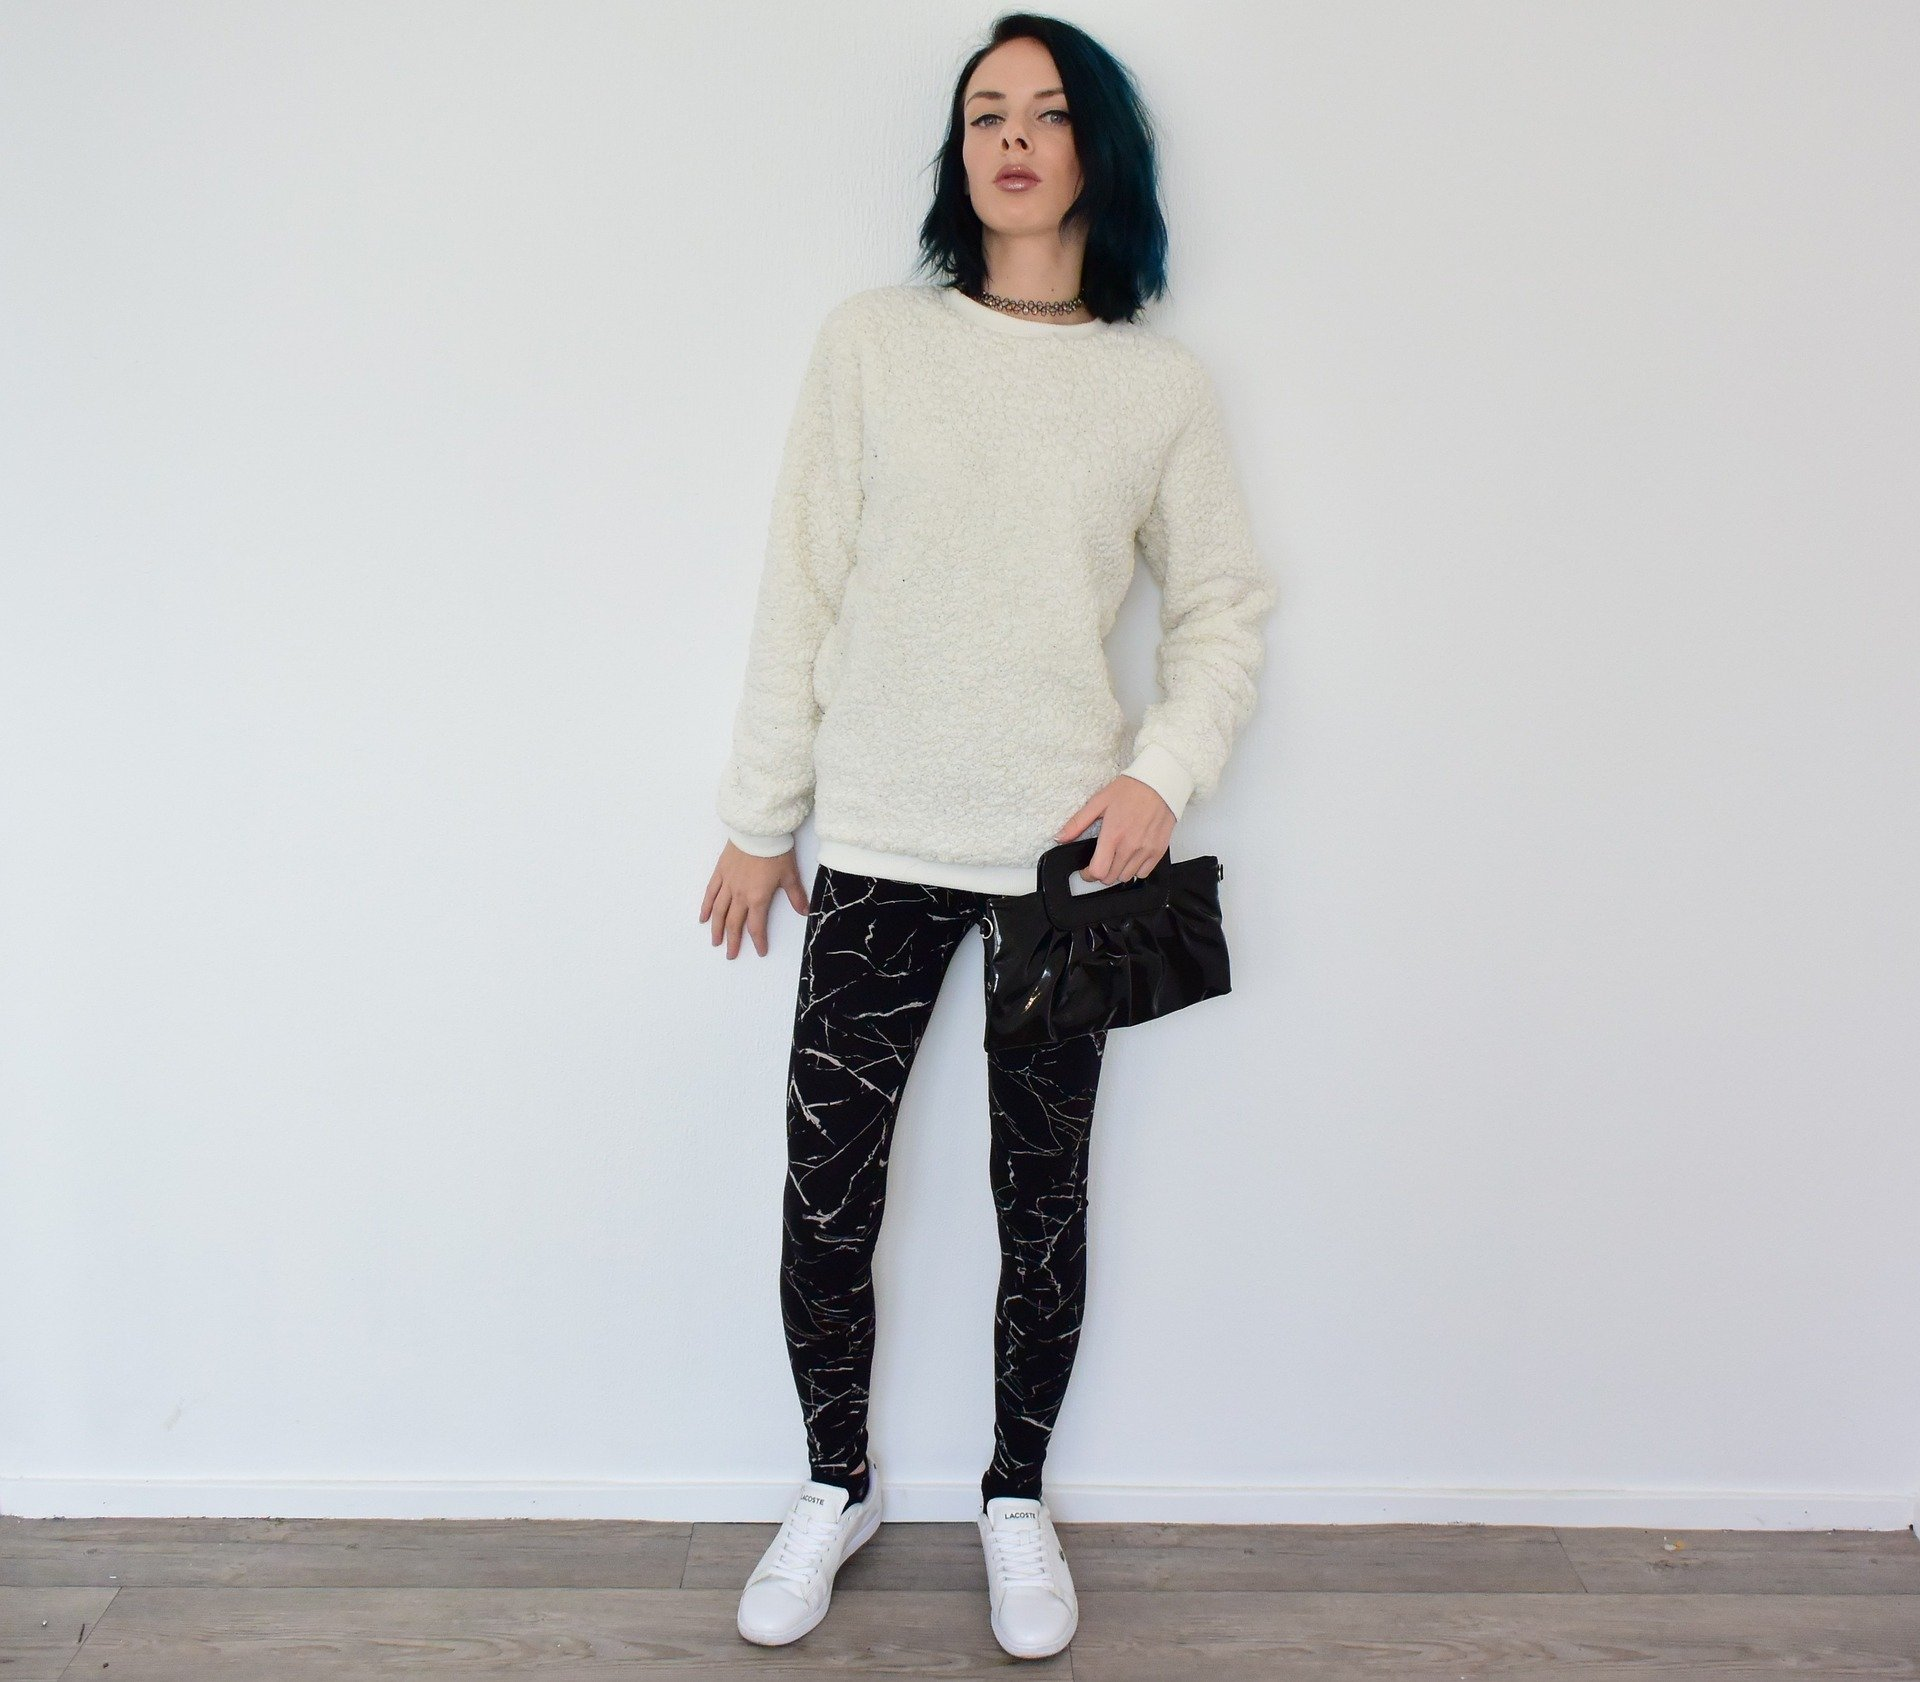 Travel Clothes: Consider A Leggings Outfit